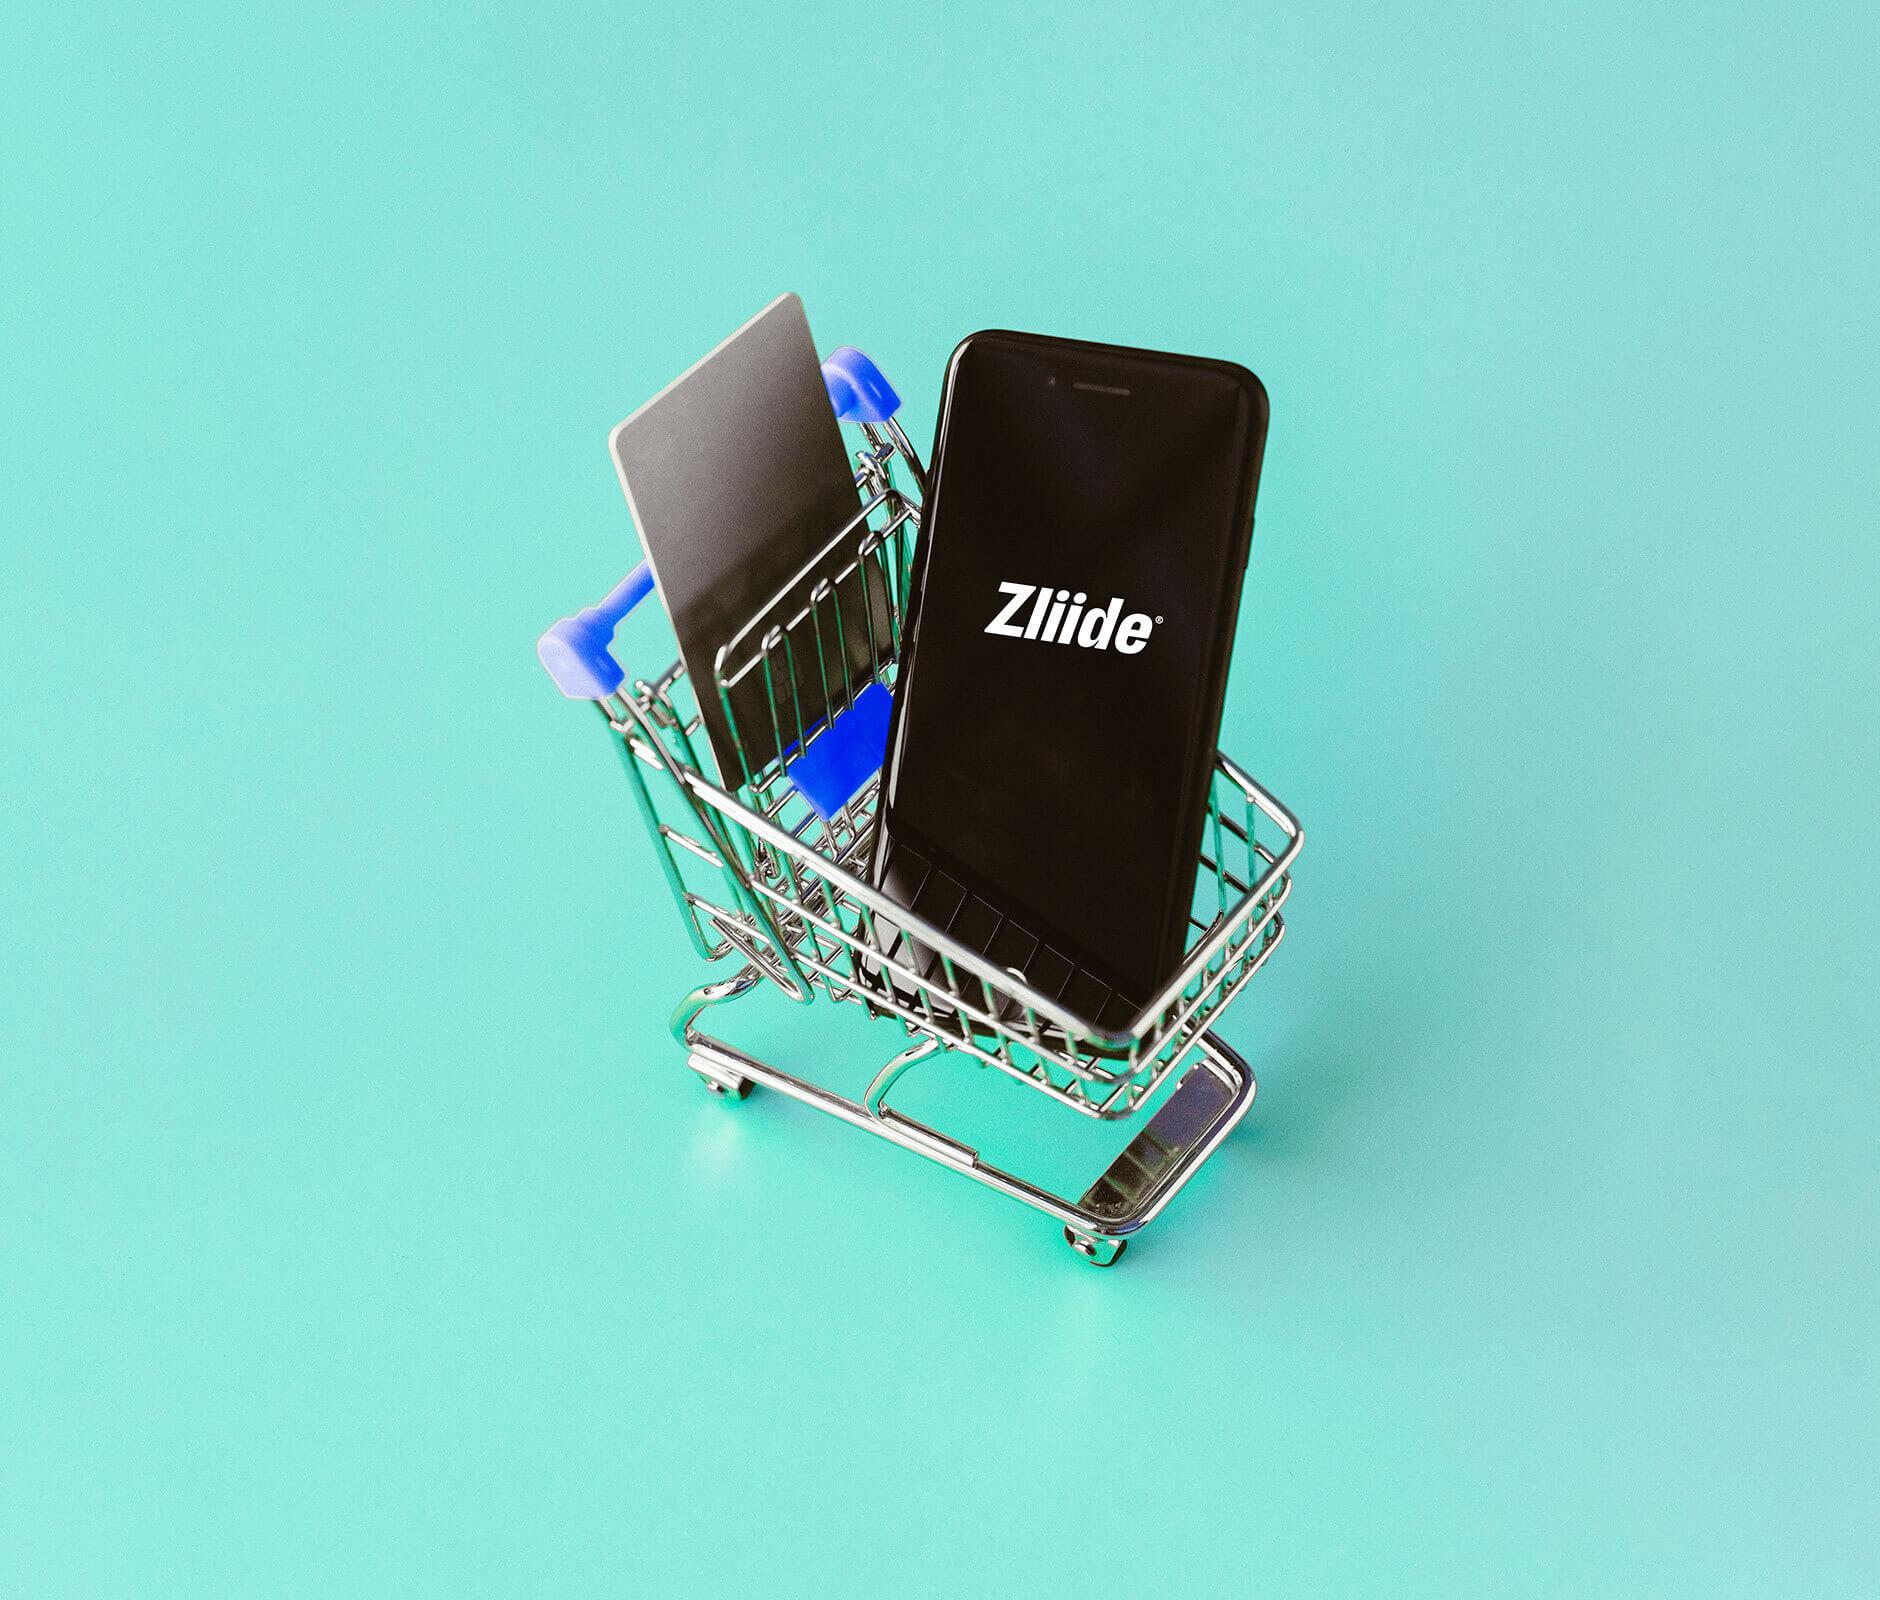 The m-commerce trend